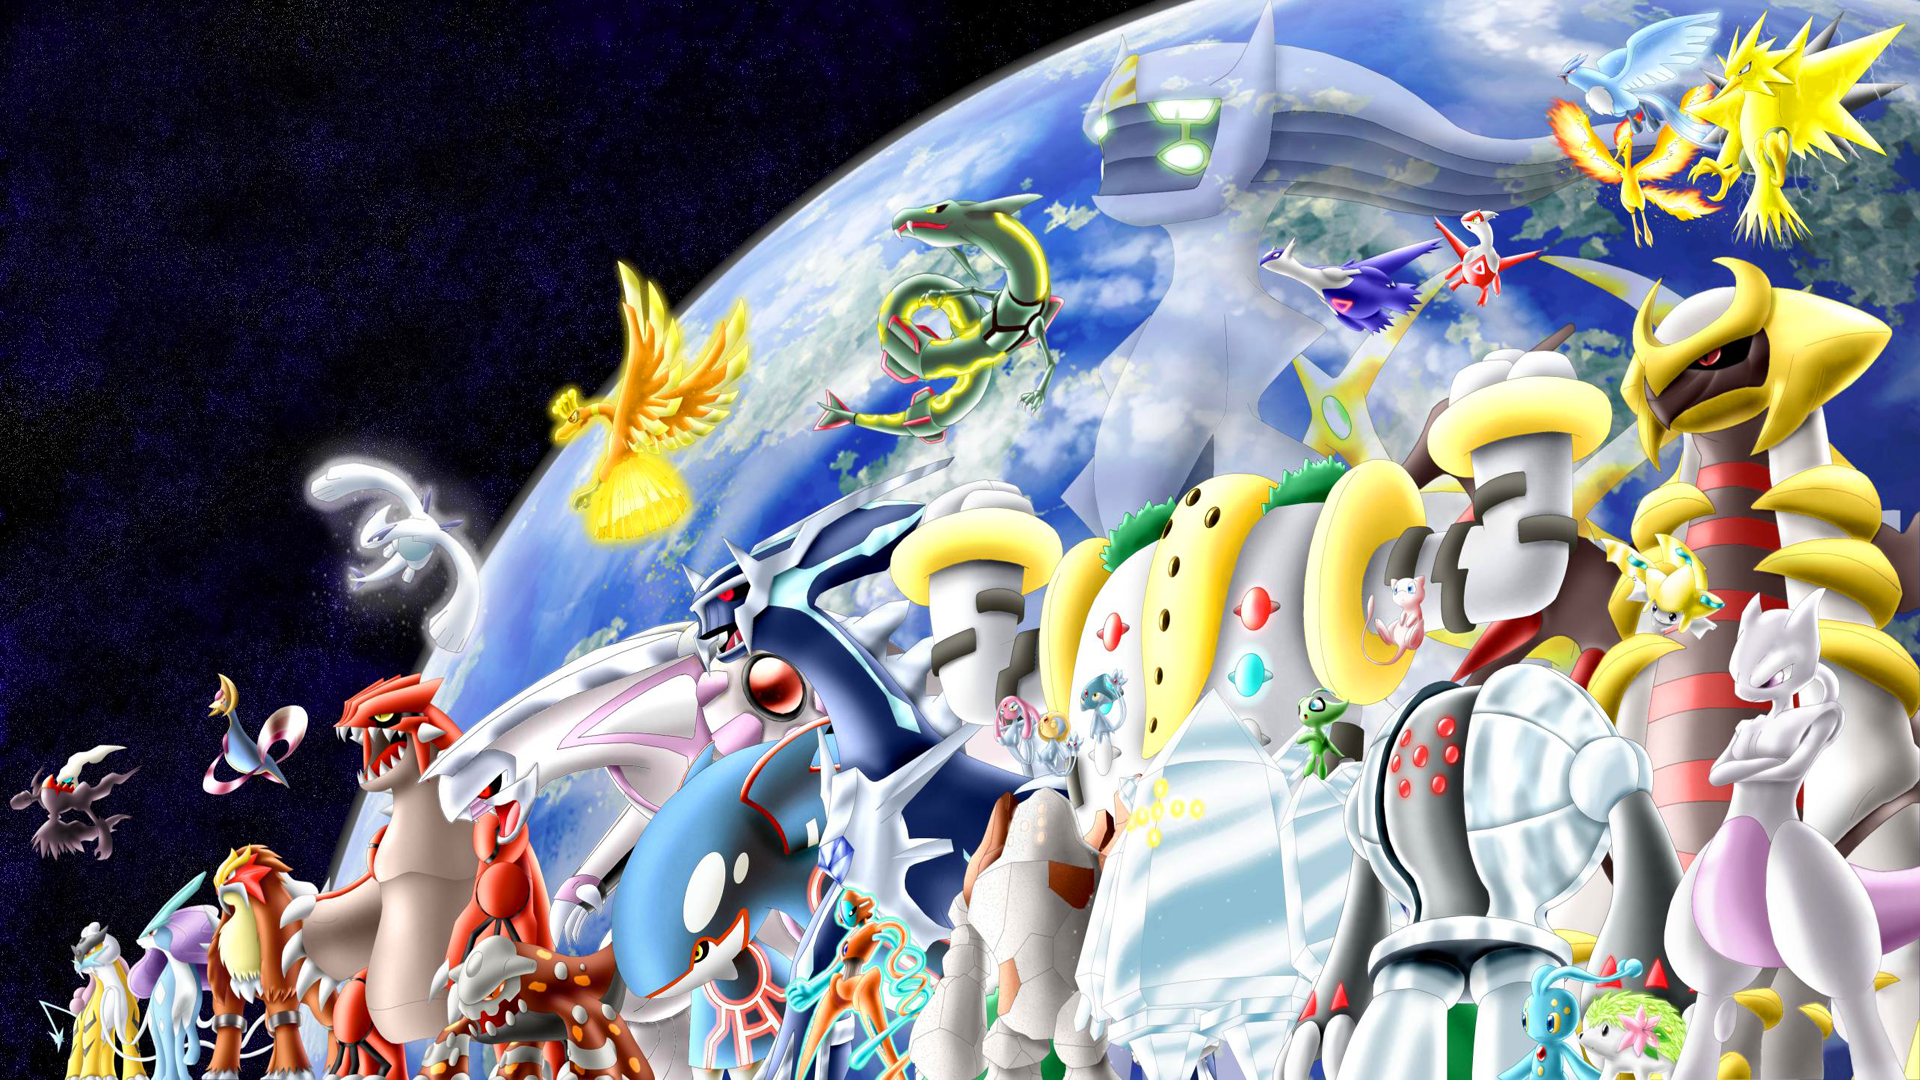 11 Arceus (Pokémon) HD Wallpapers | Backgrounds ...